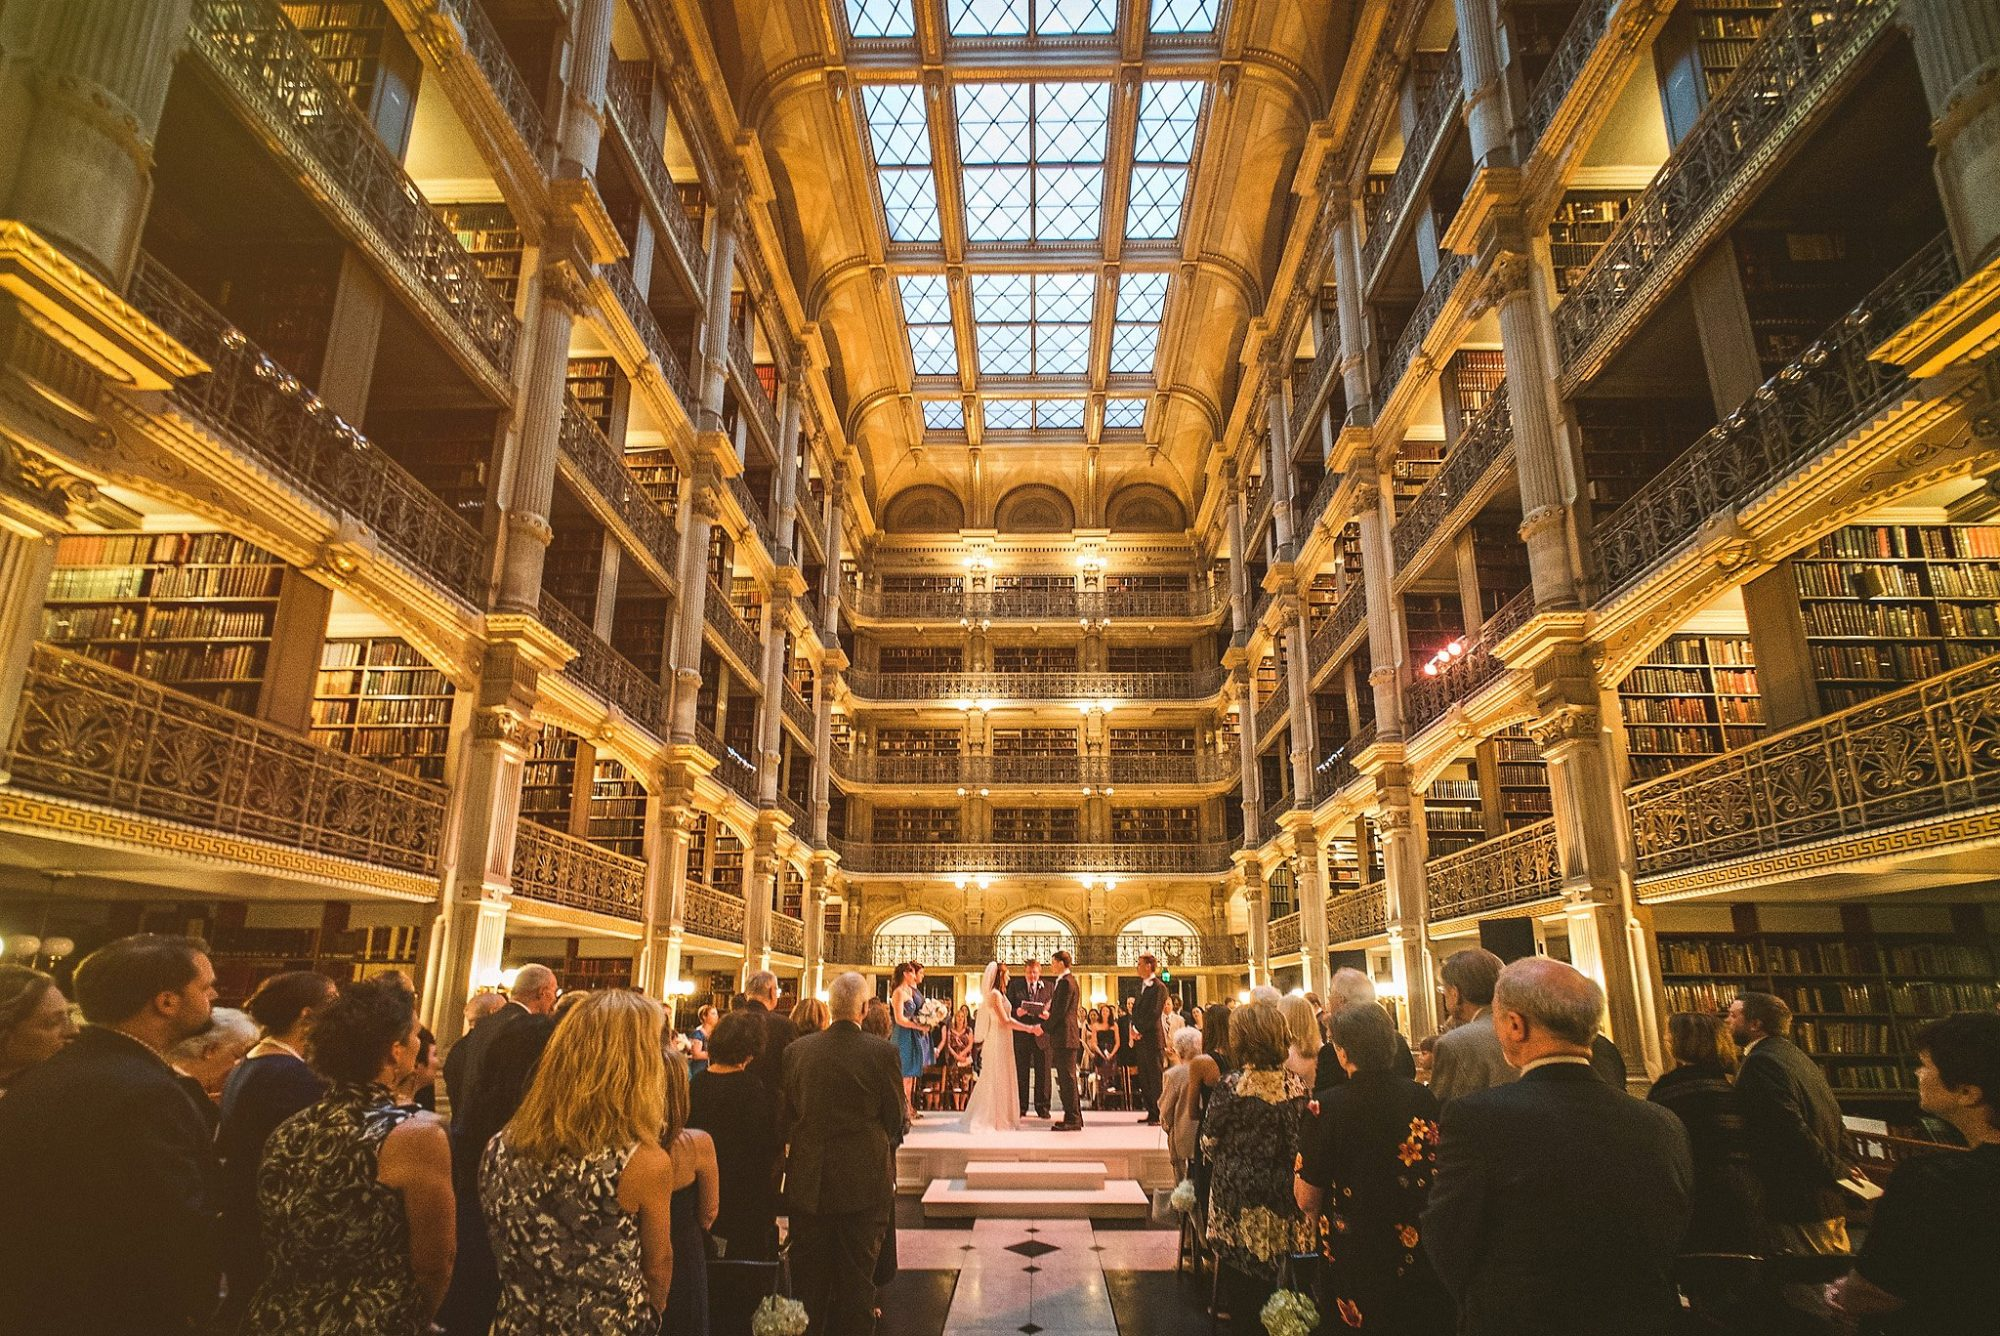 George Peabody Library (Baltimore, Maryland)